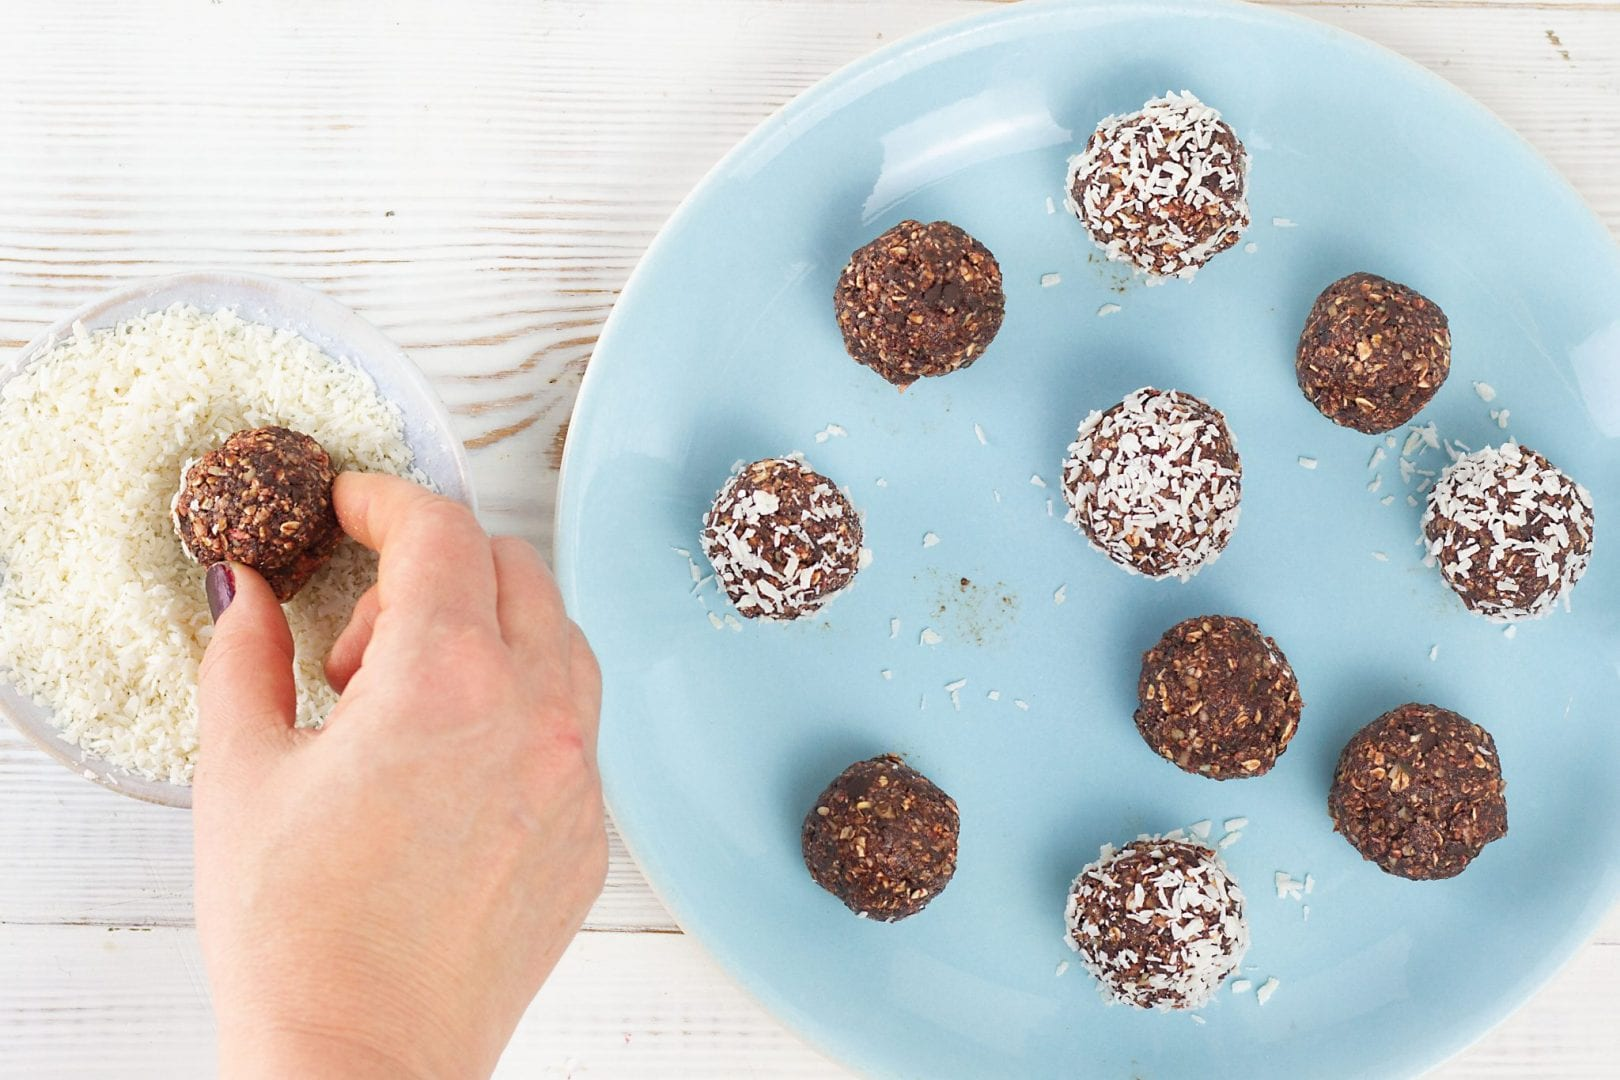 Bliss balls - chocolate and coconut bliss balls - enjoy these healthy energy bites